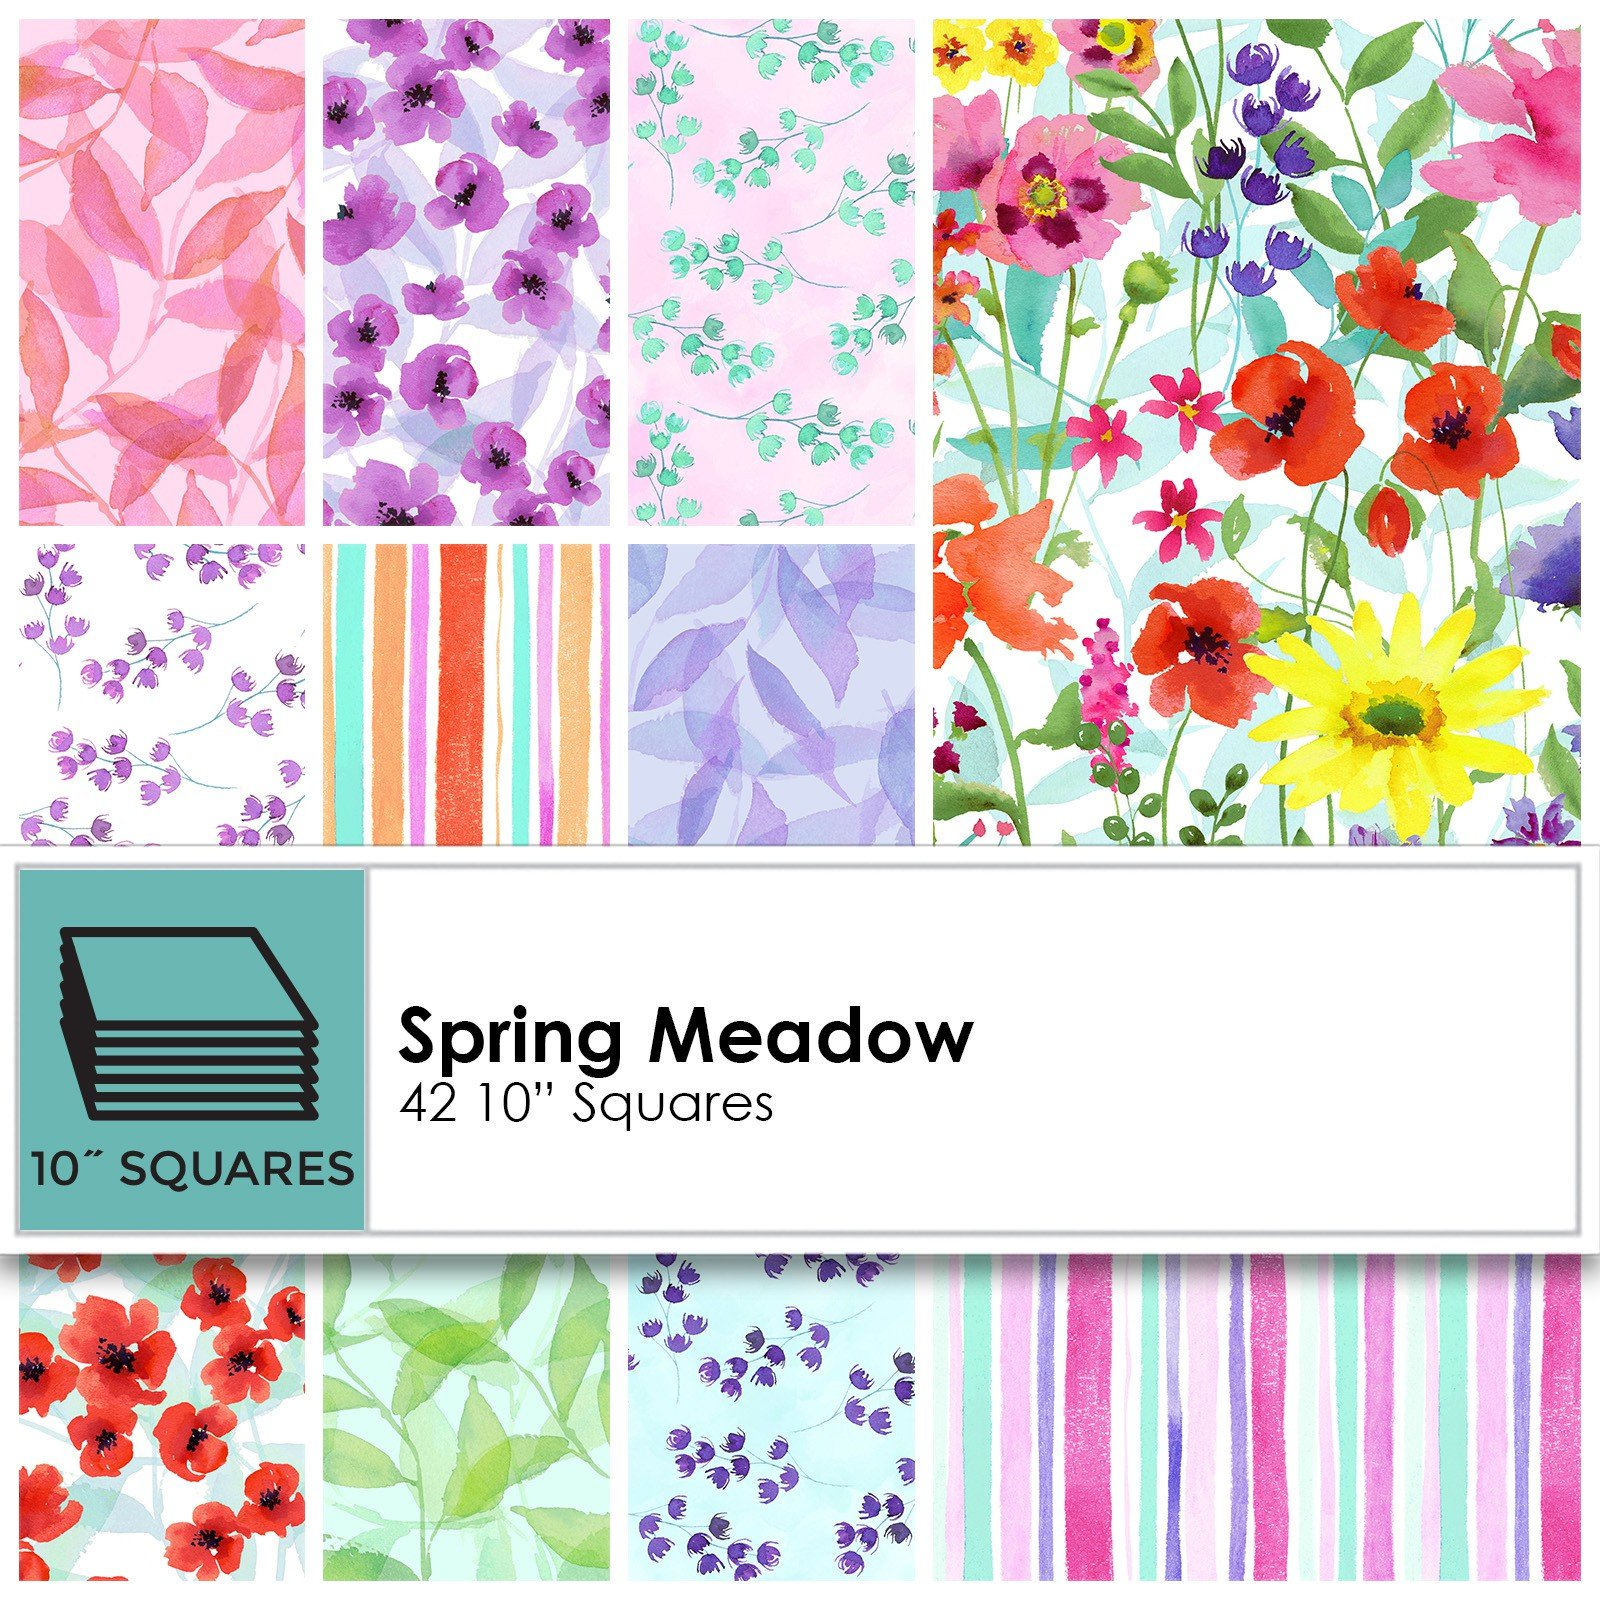 Spring Meadow 10 Squares